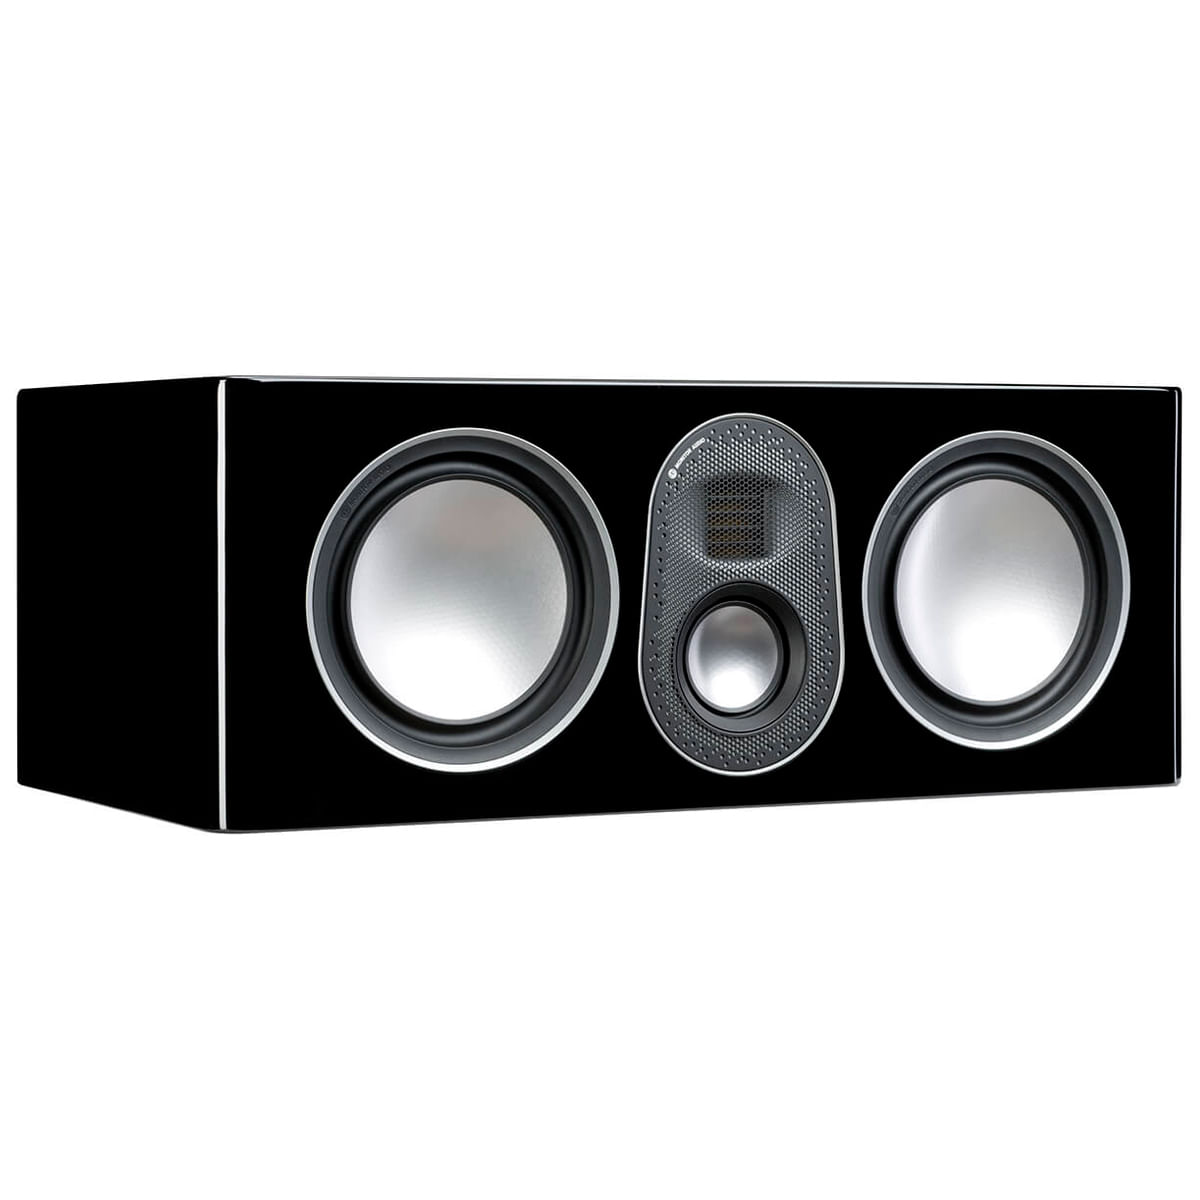 01-MONITOR-AUDIO-GOLD-C250-BLACK-PERSPECTIVE